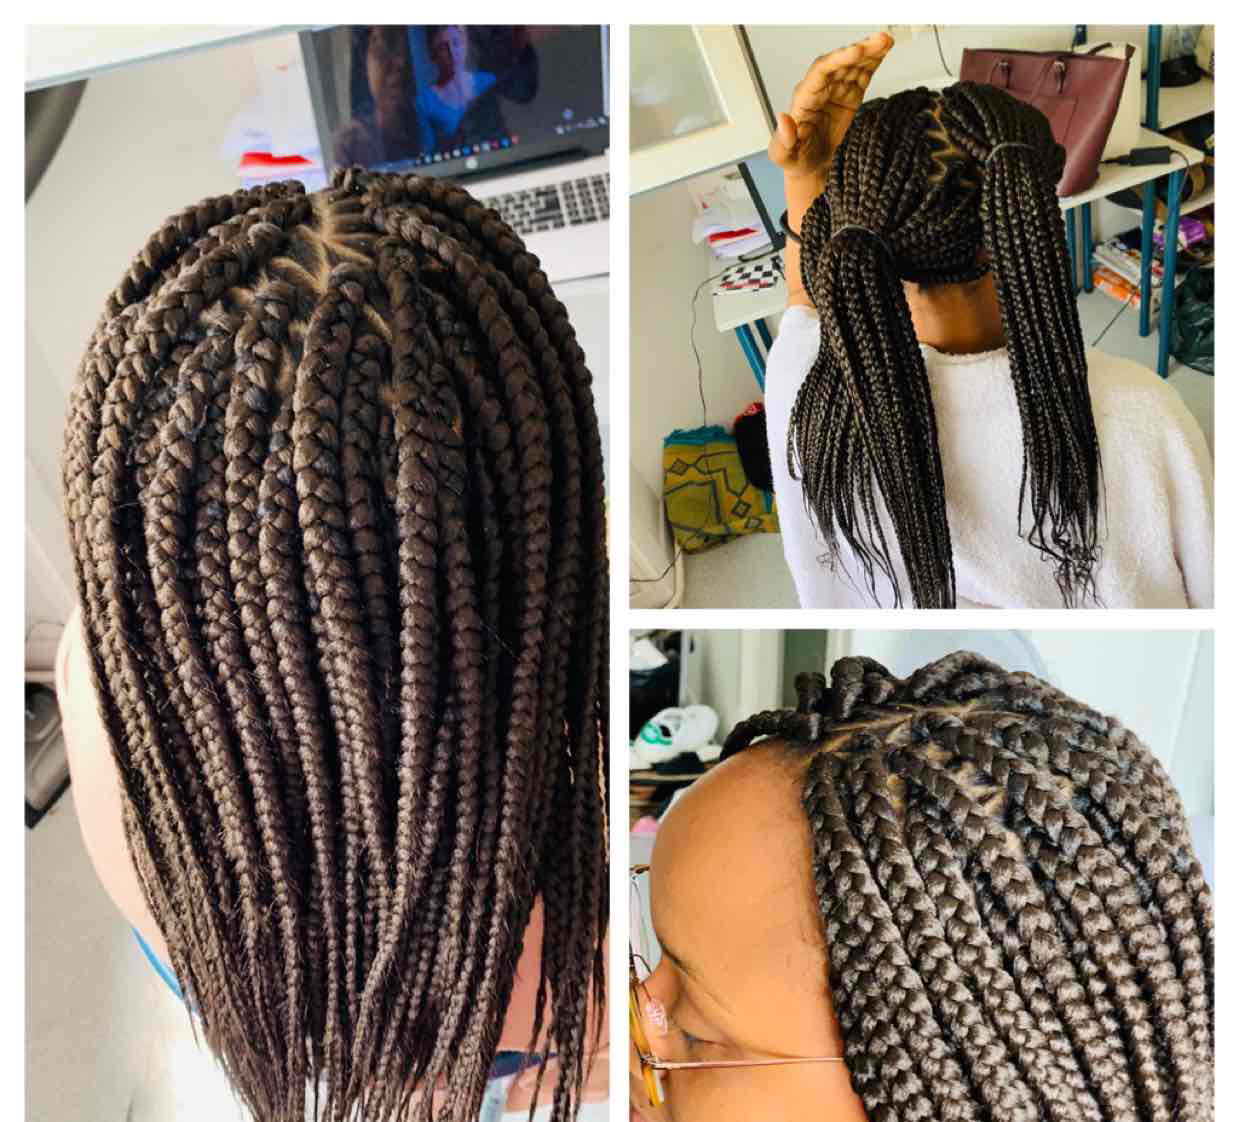 salon de coiffure afro tresse tresses box braids crochet braids vanilles tissages paris 75 77 78 91 92 93 94 95 IYFNMHFH